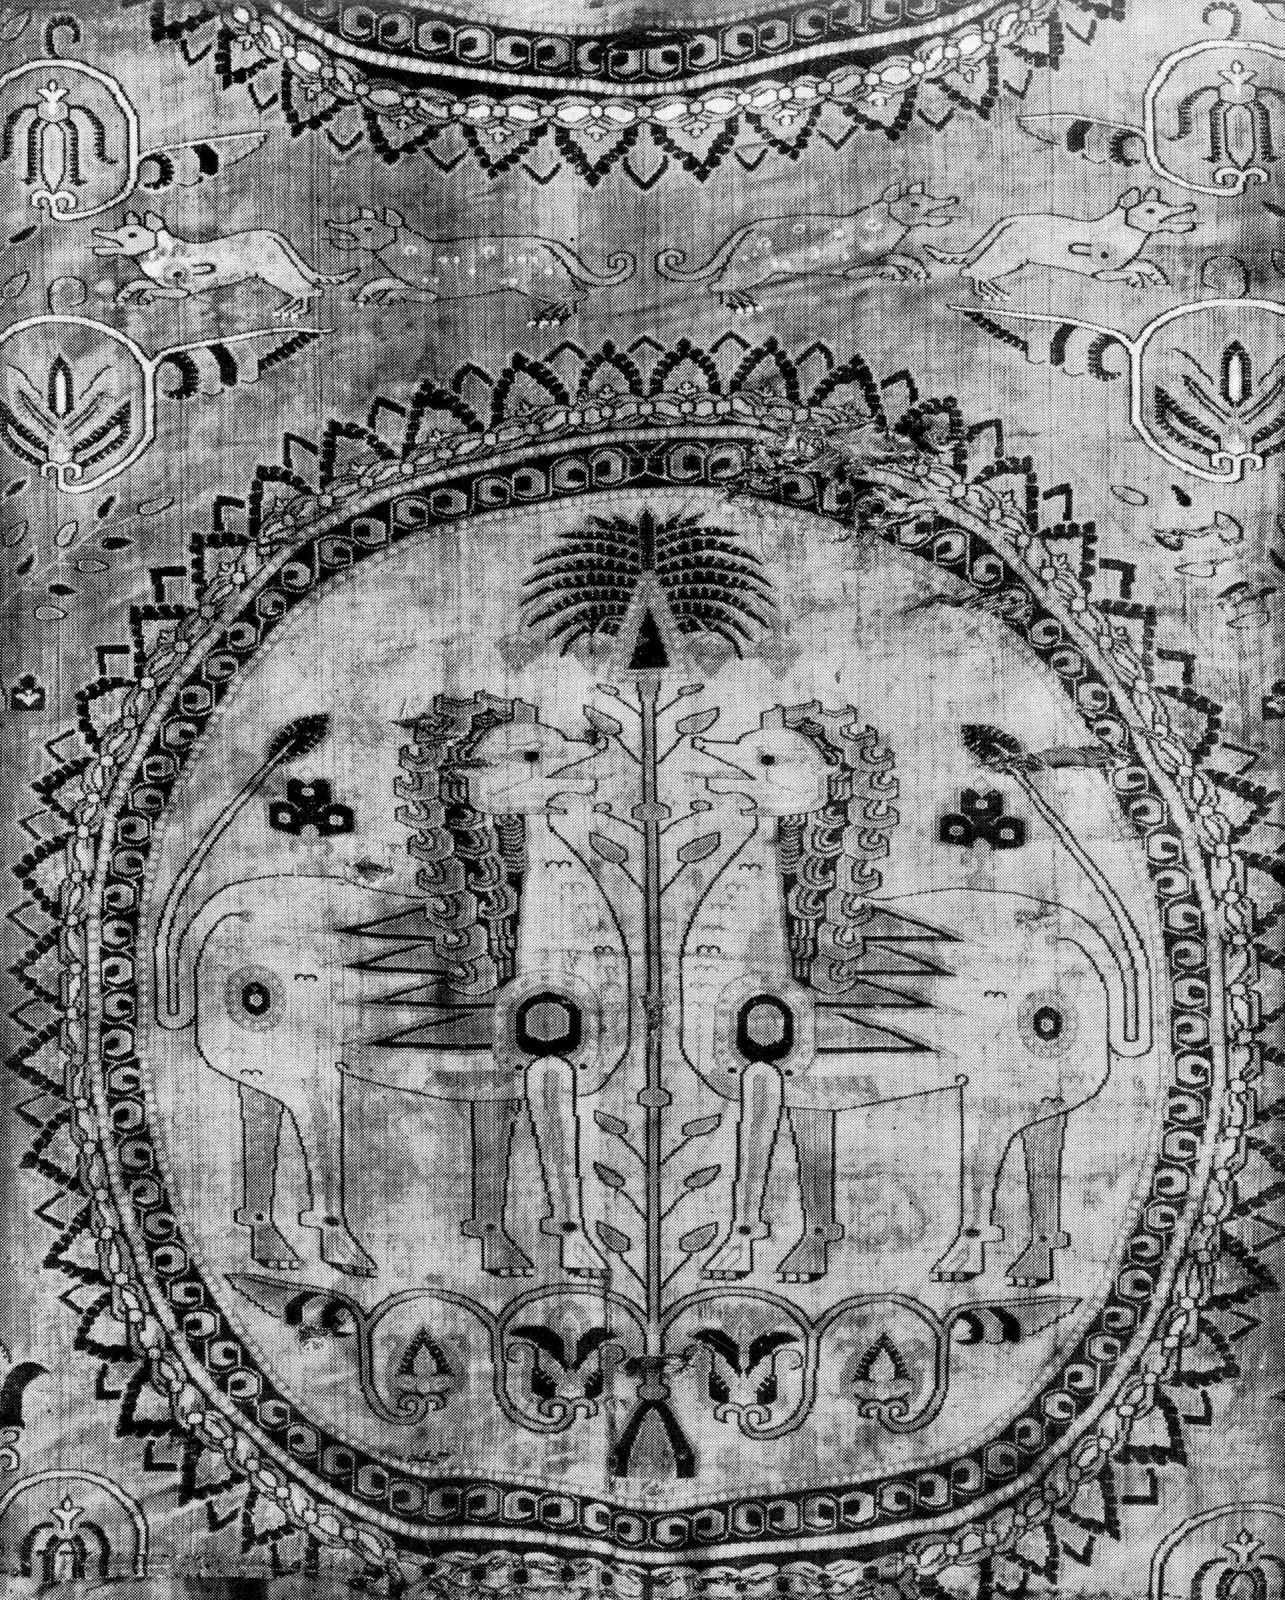 Roundel on a textile with two facing lions separated by a vegetal form